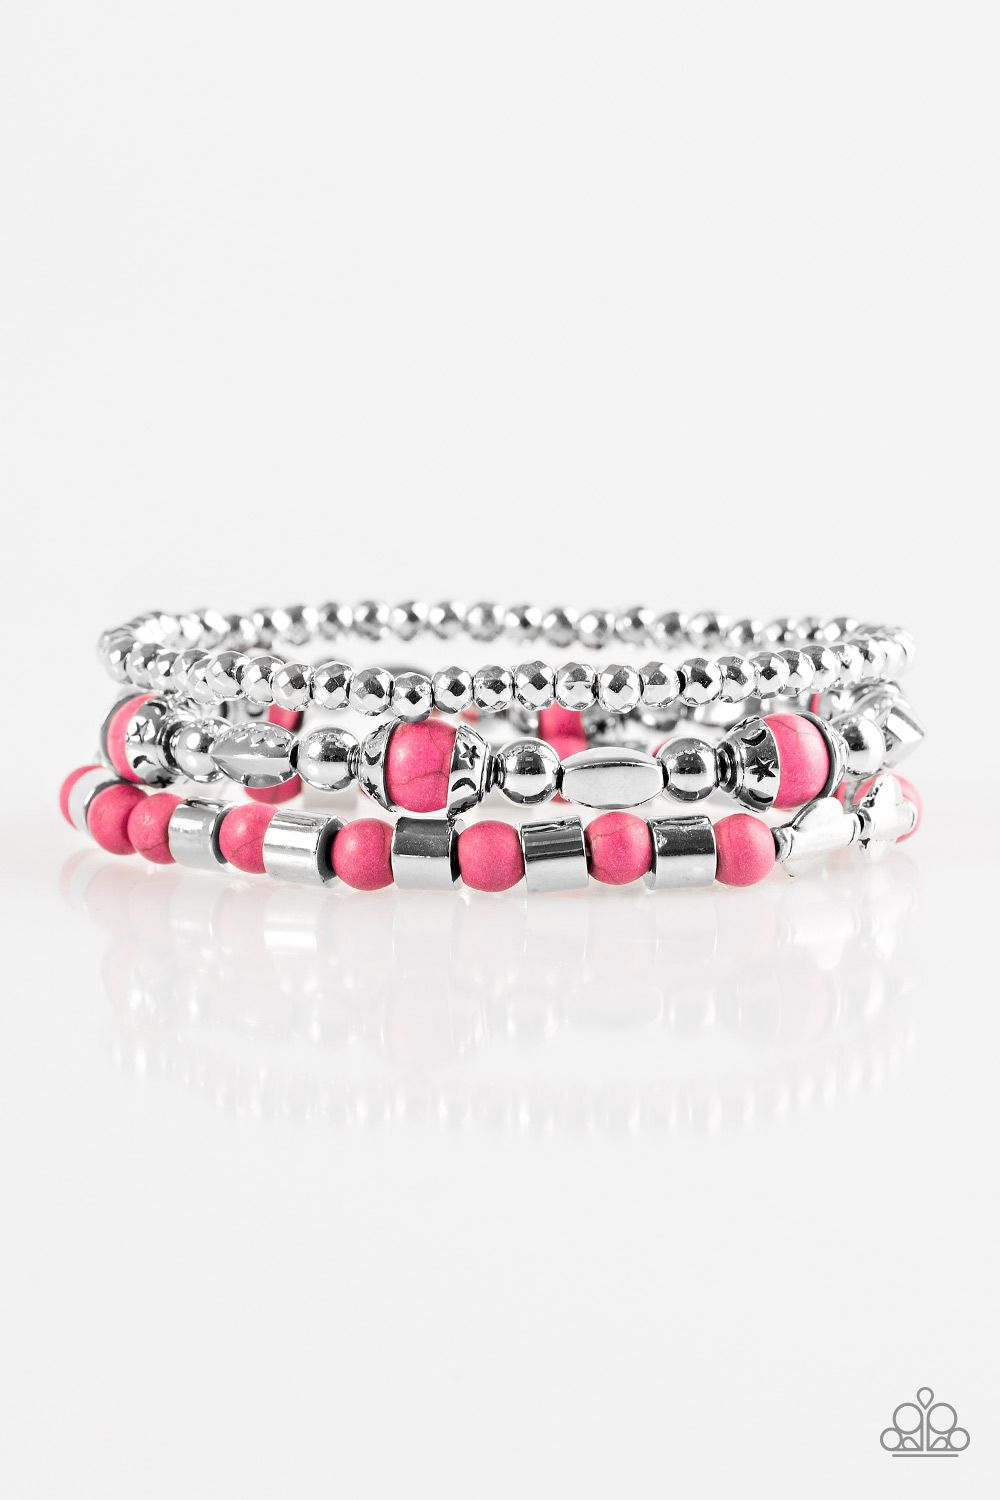 Mesa Mason Pink With Images Paparazzi Accessories Silver Bracelets Jewels